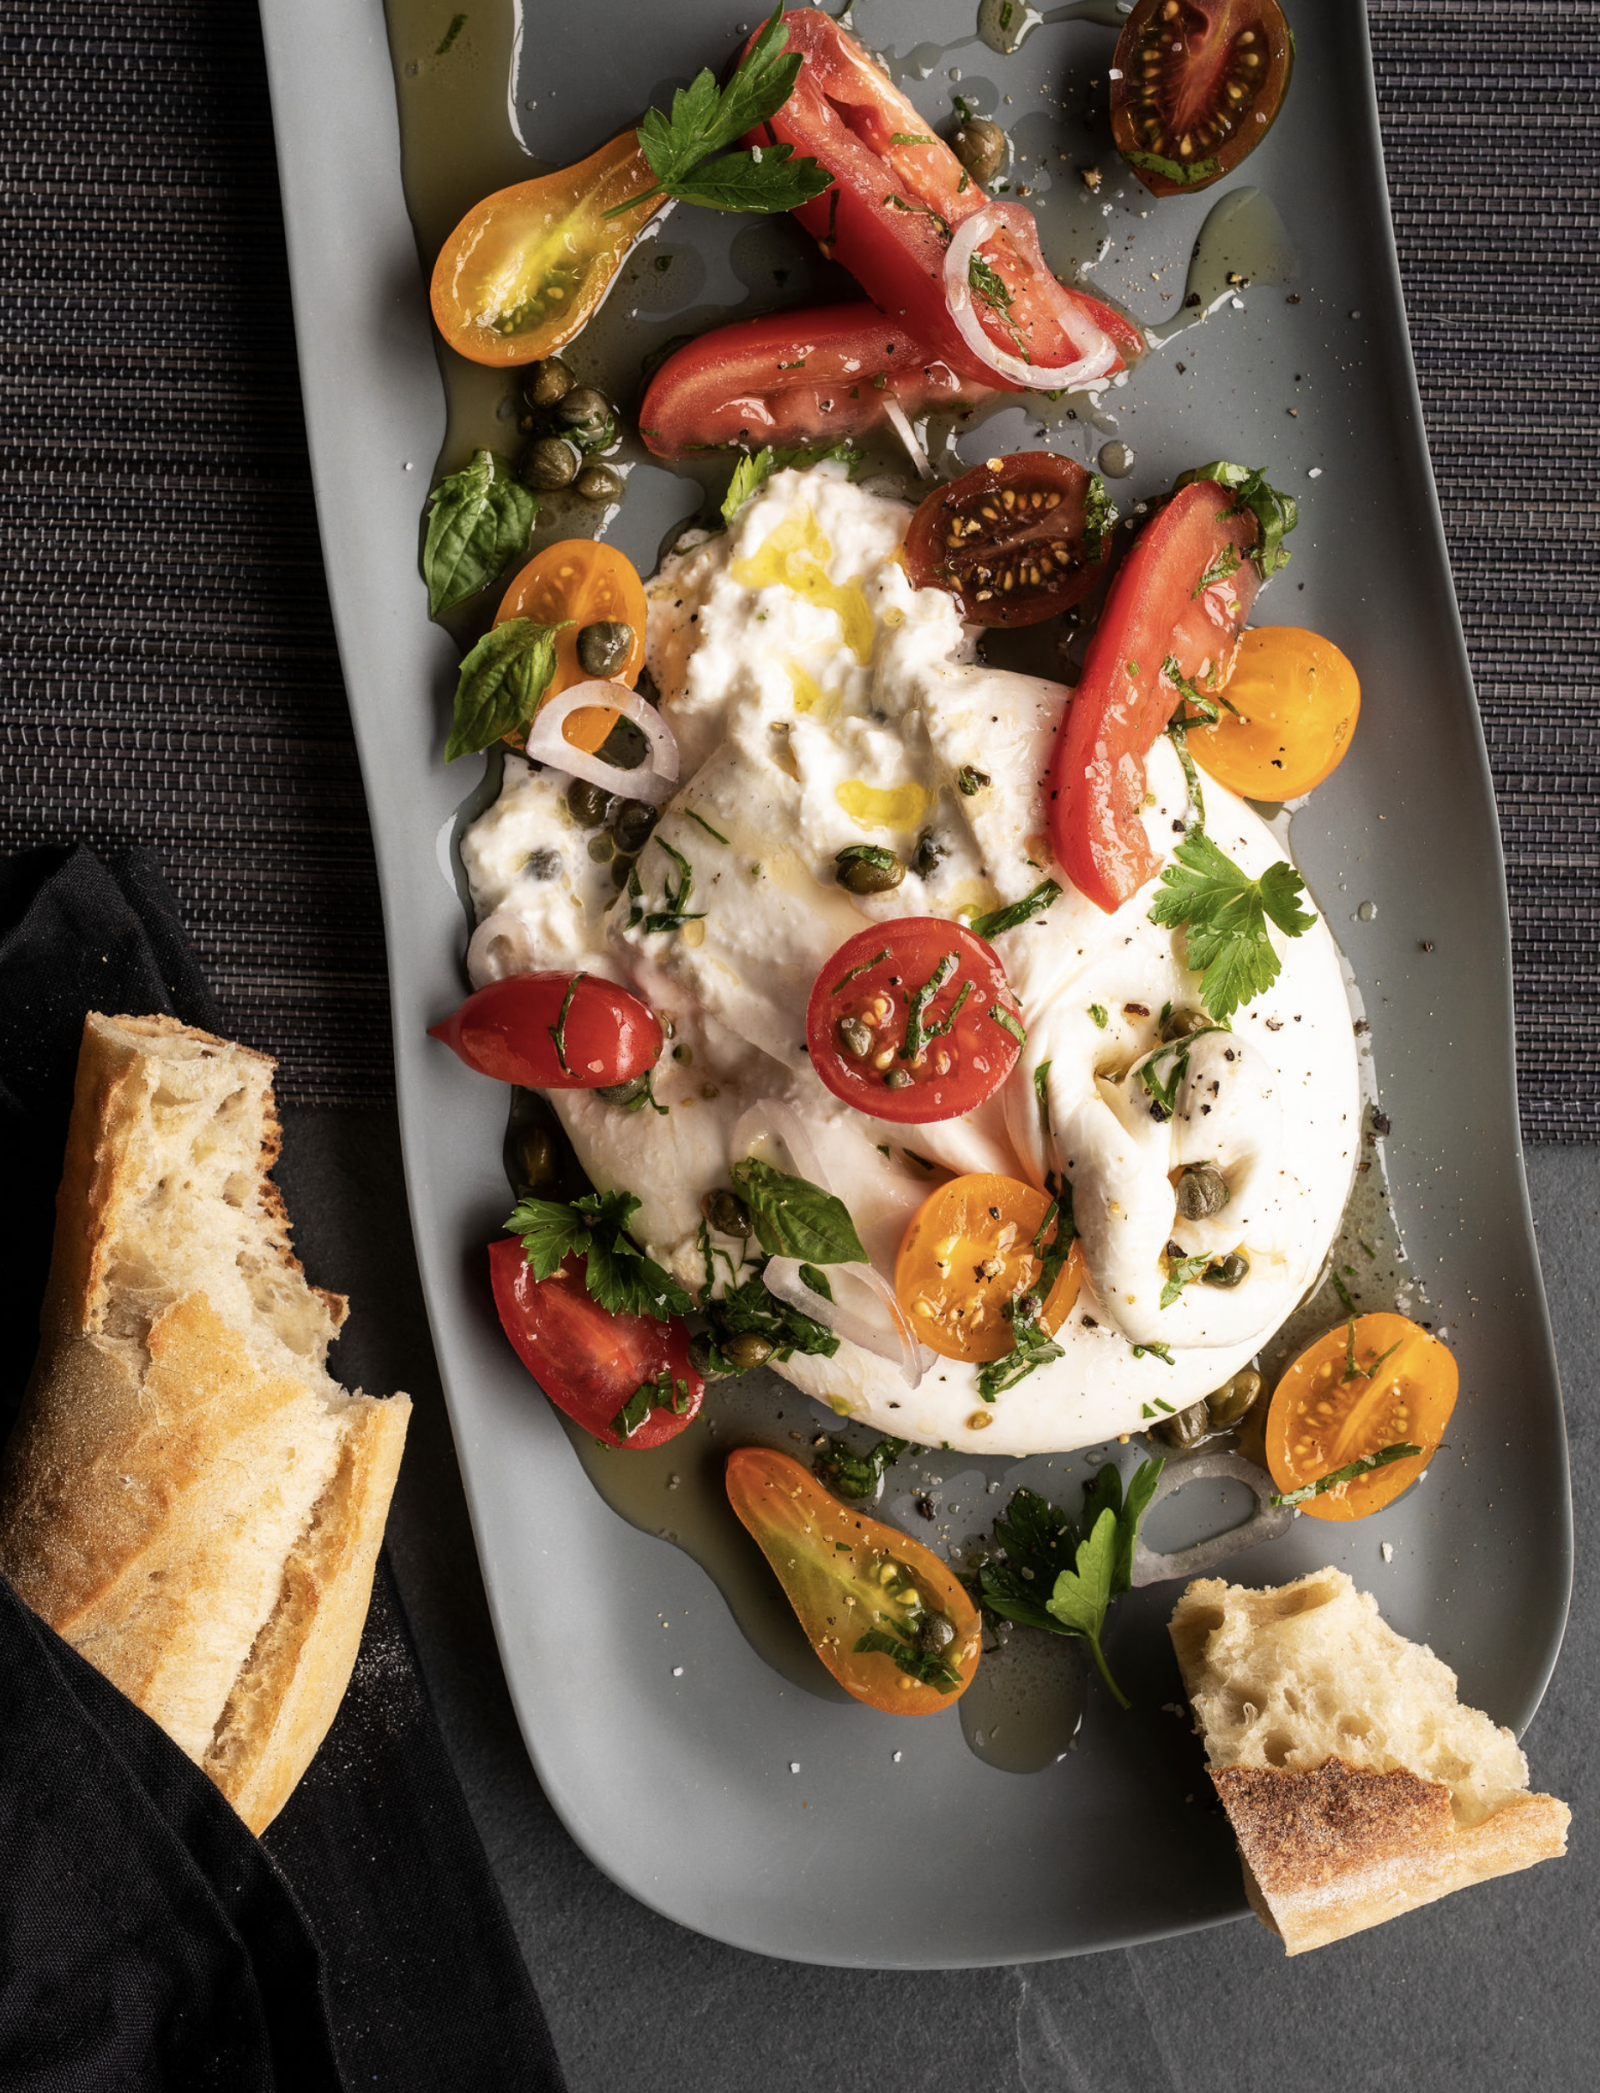 Runny burrata with Quebec cherry tomatoes and strawberries